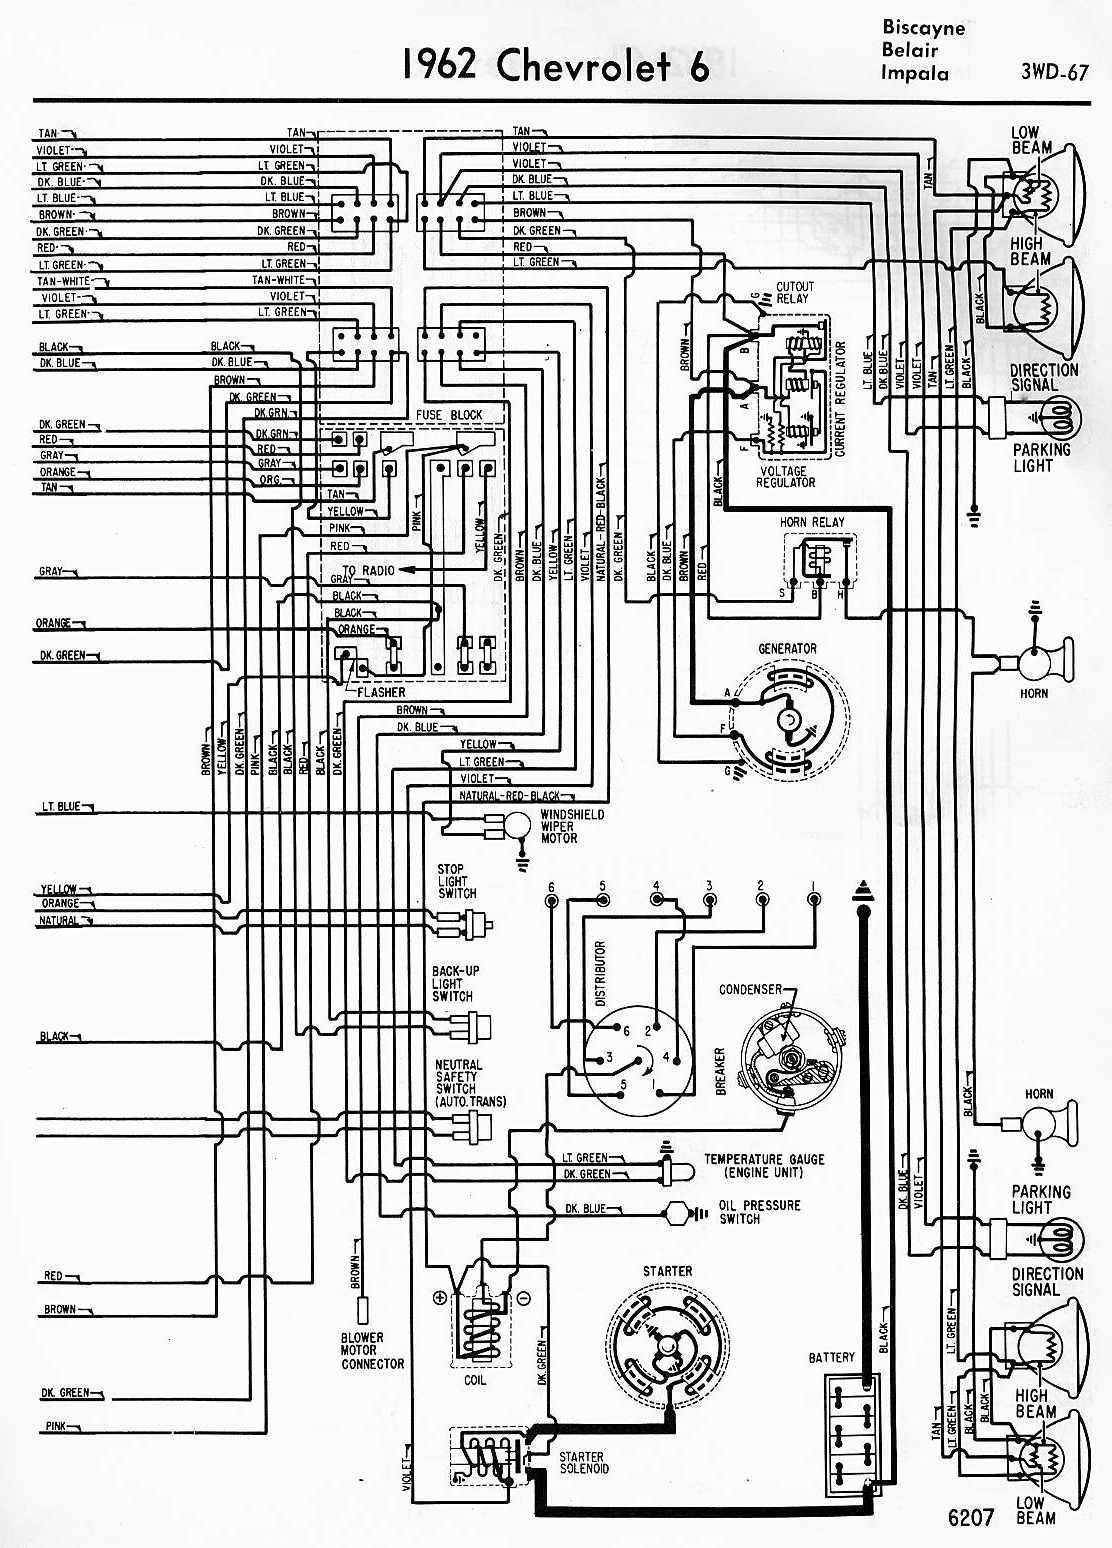 2000 impala wiring diagram auto wiring diagrams simple wiring schema 2001  chevy impala engine diagram 1972